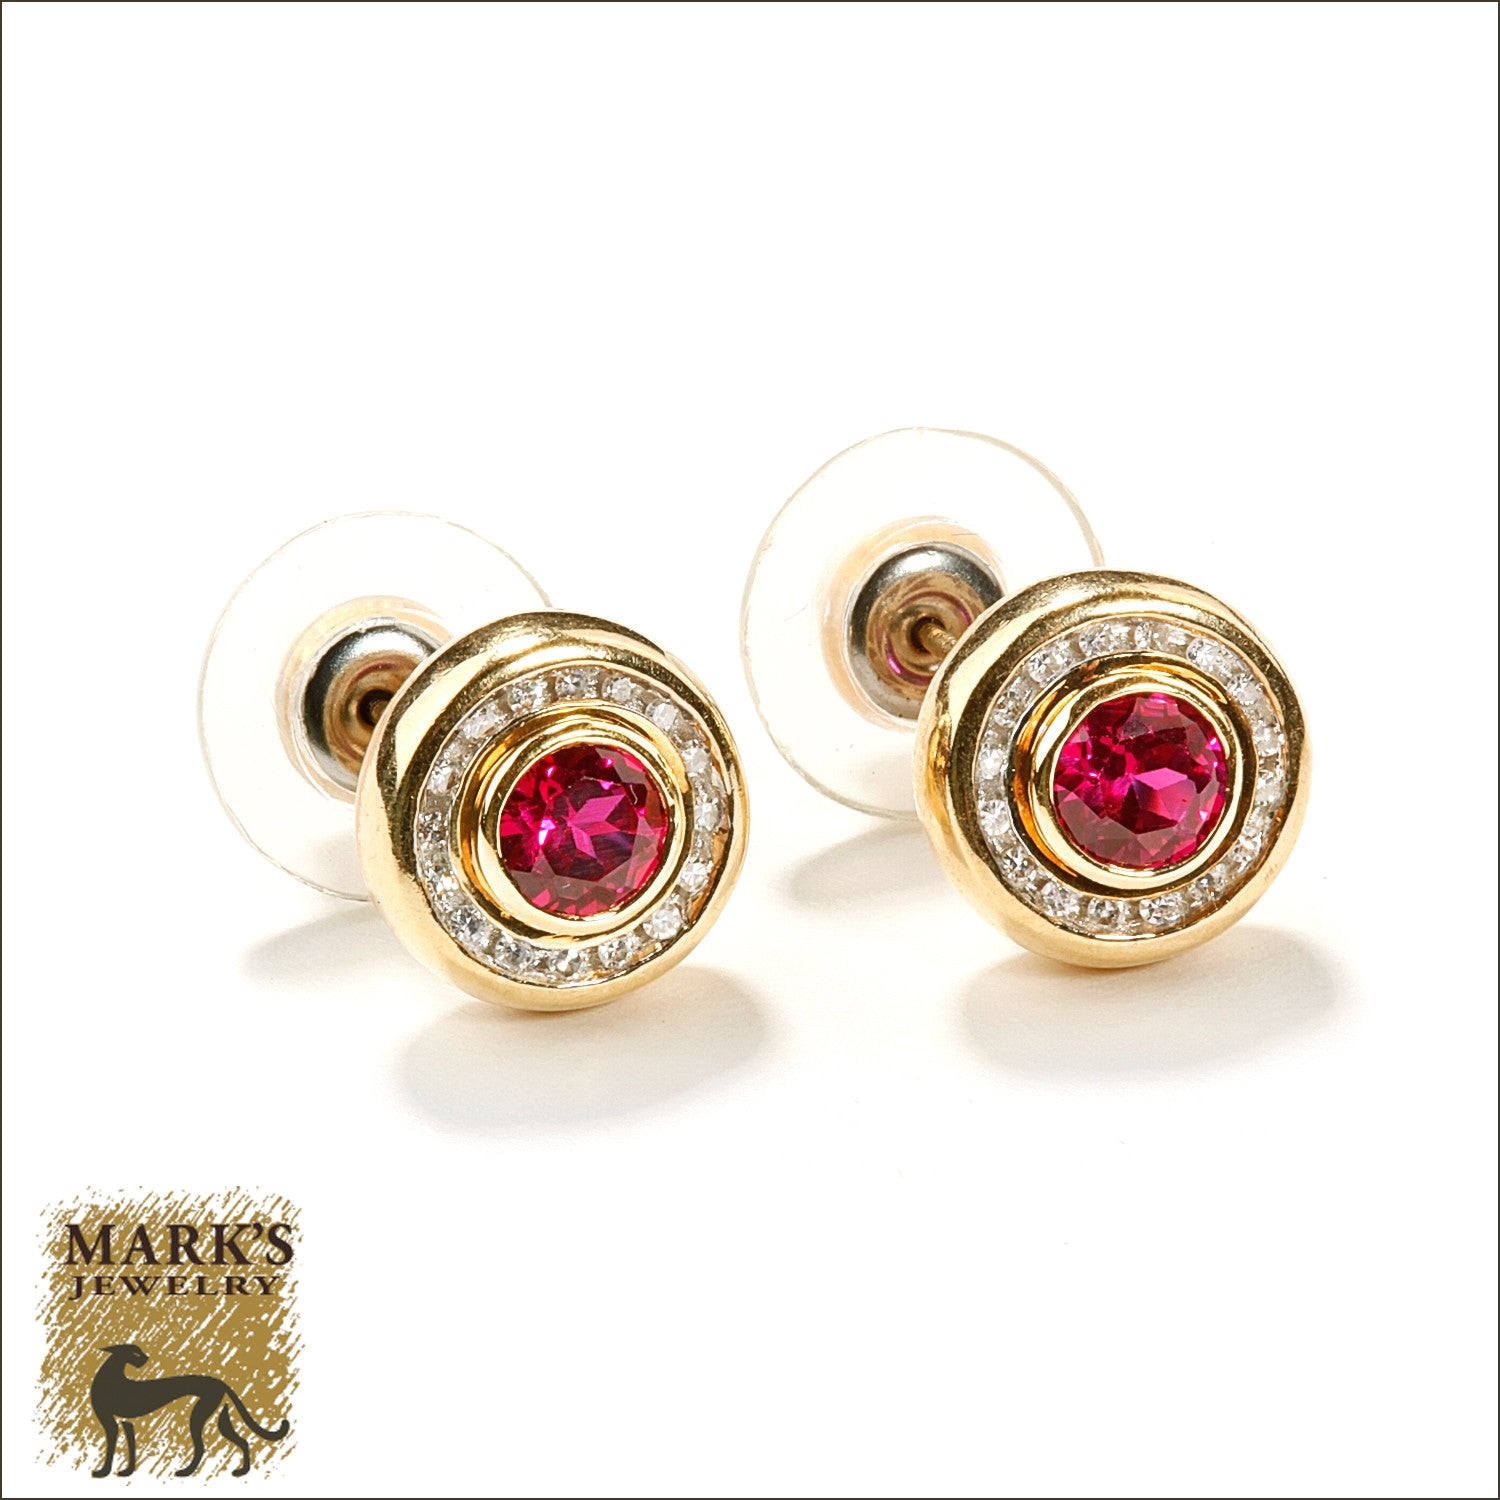 jewellery co magie ruby la products render juliette earrings wooten